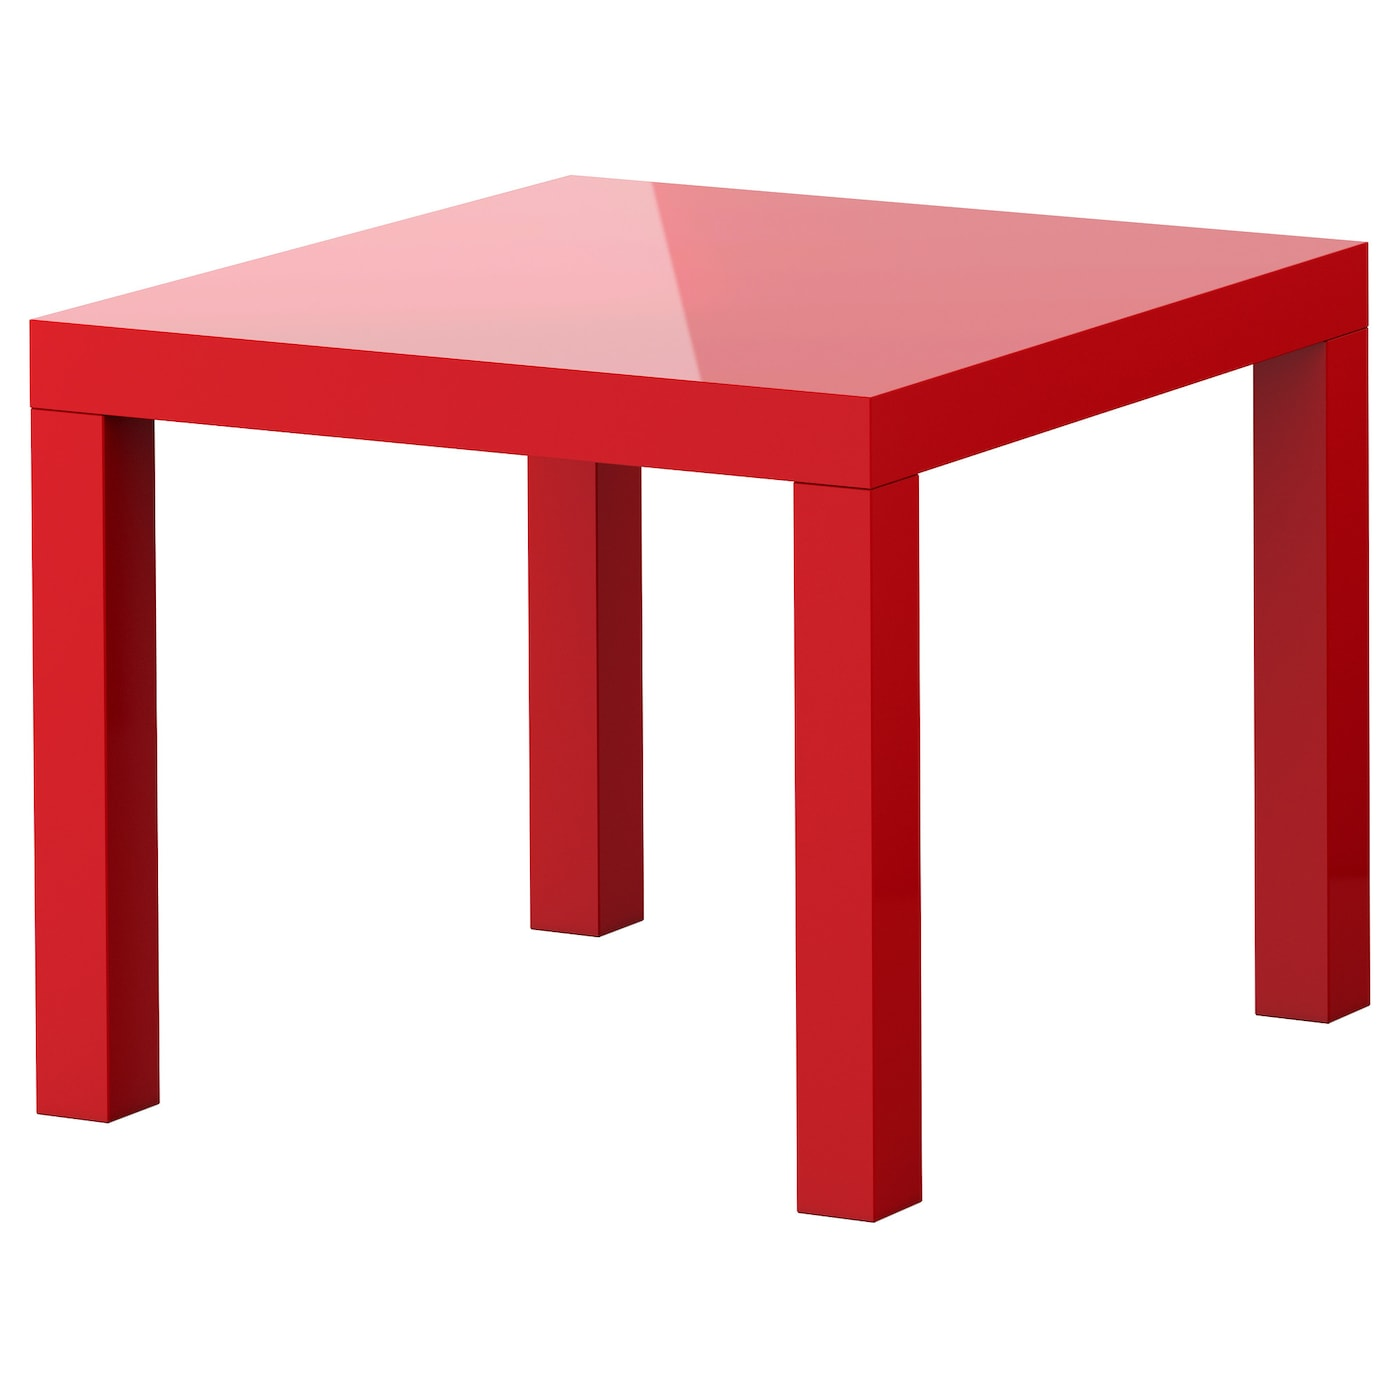 Lack side table high gloss red 55x55 cm ikea for Base de table ikea